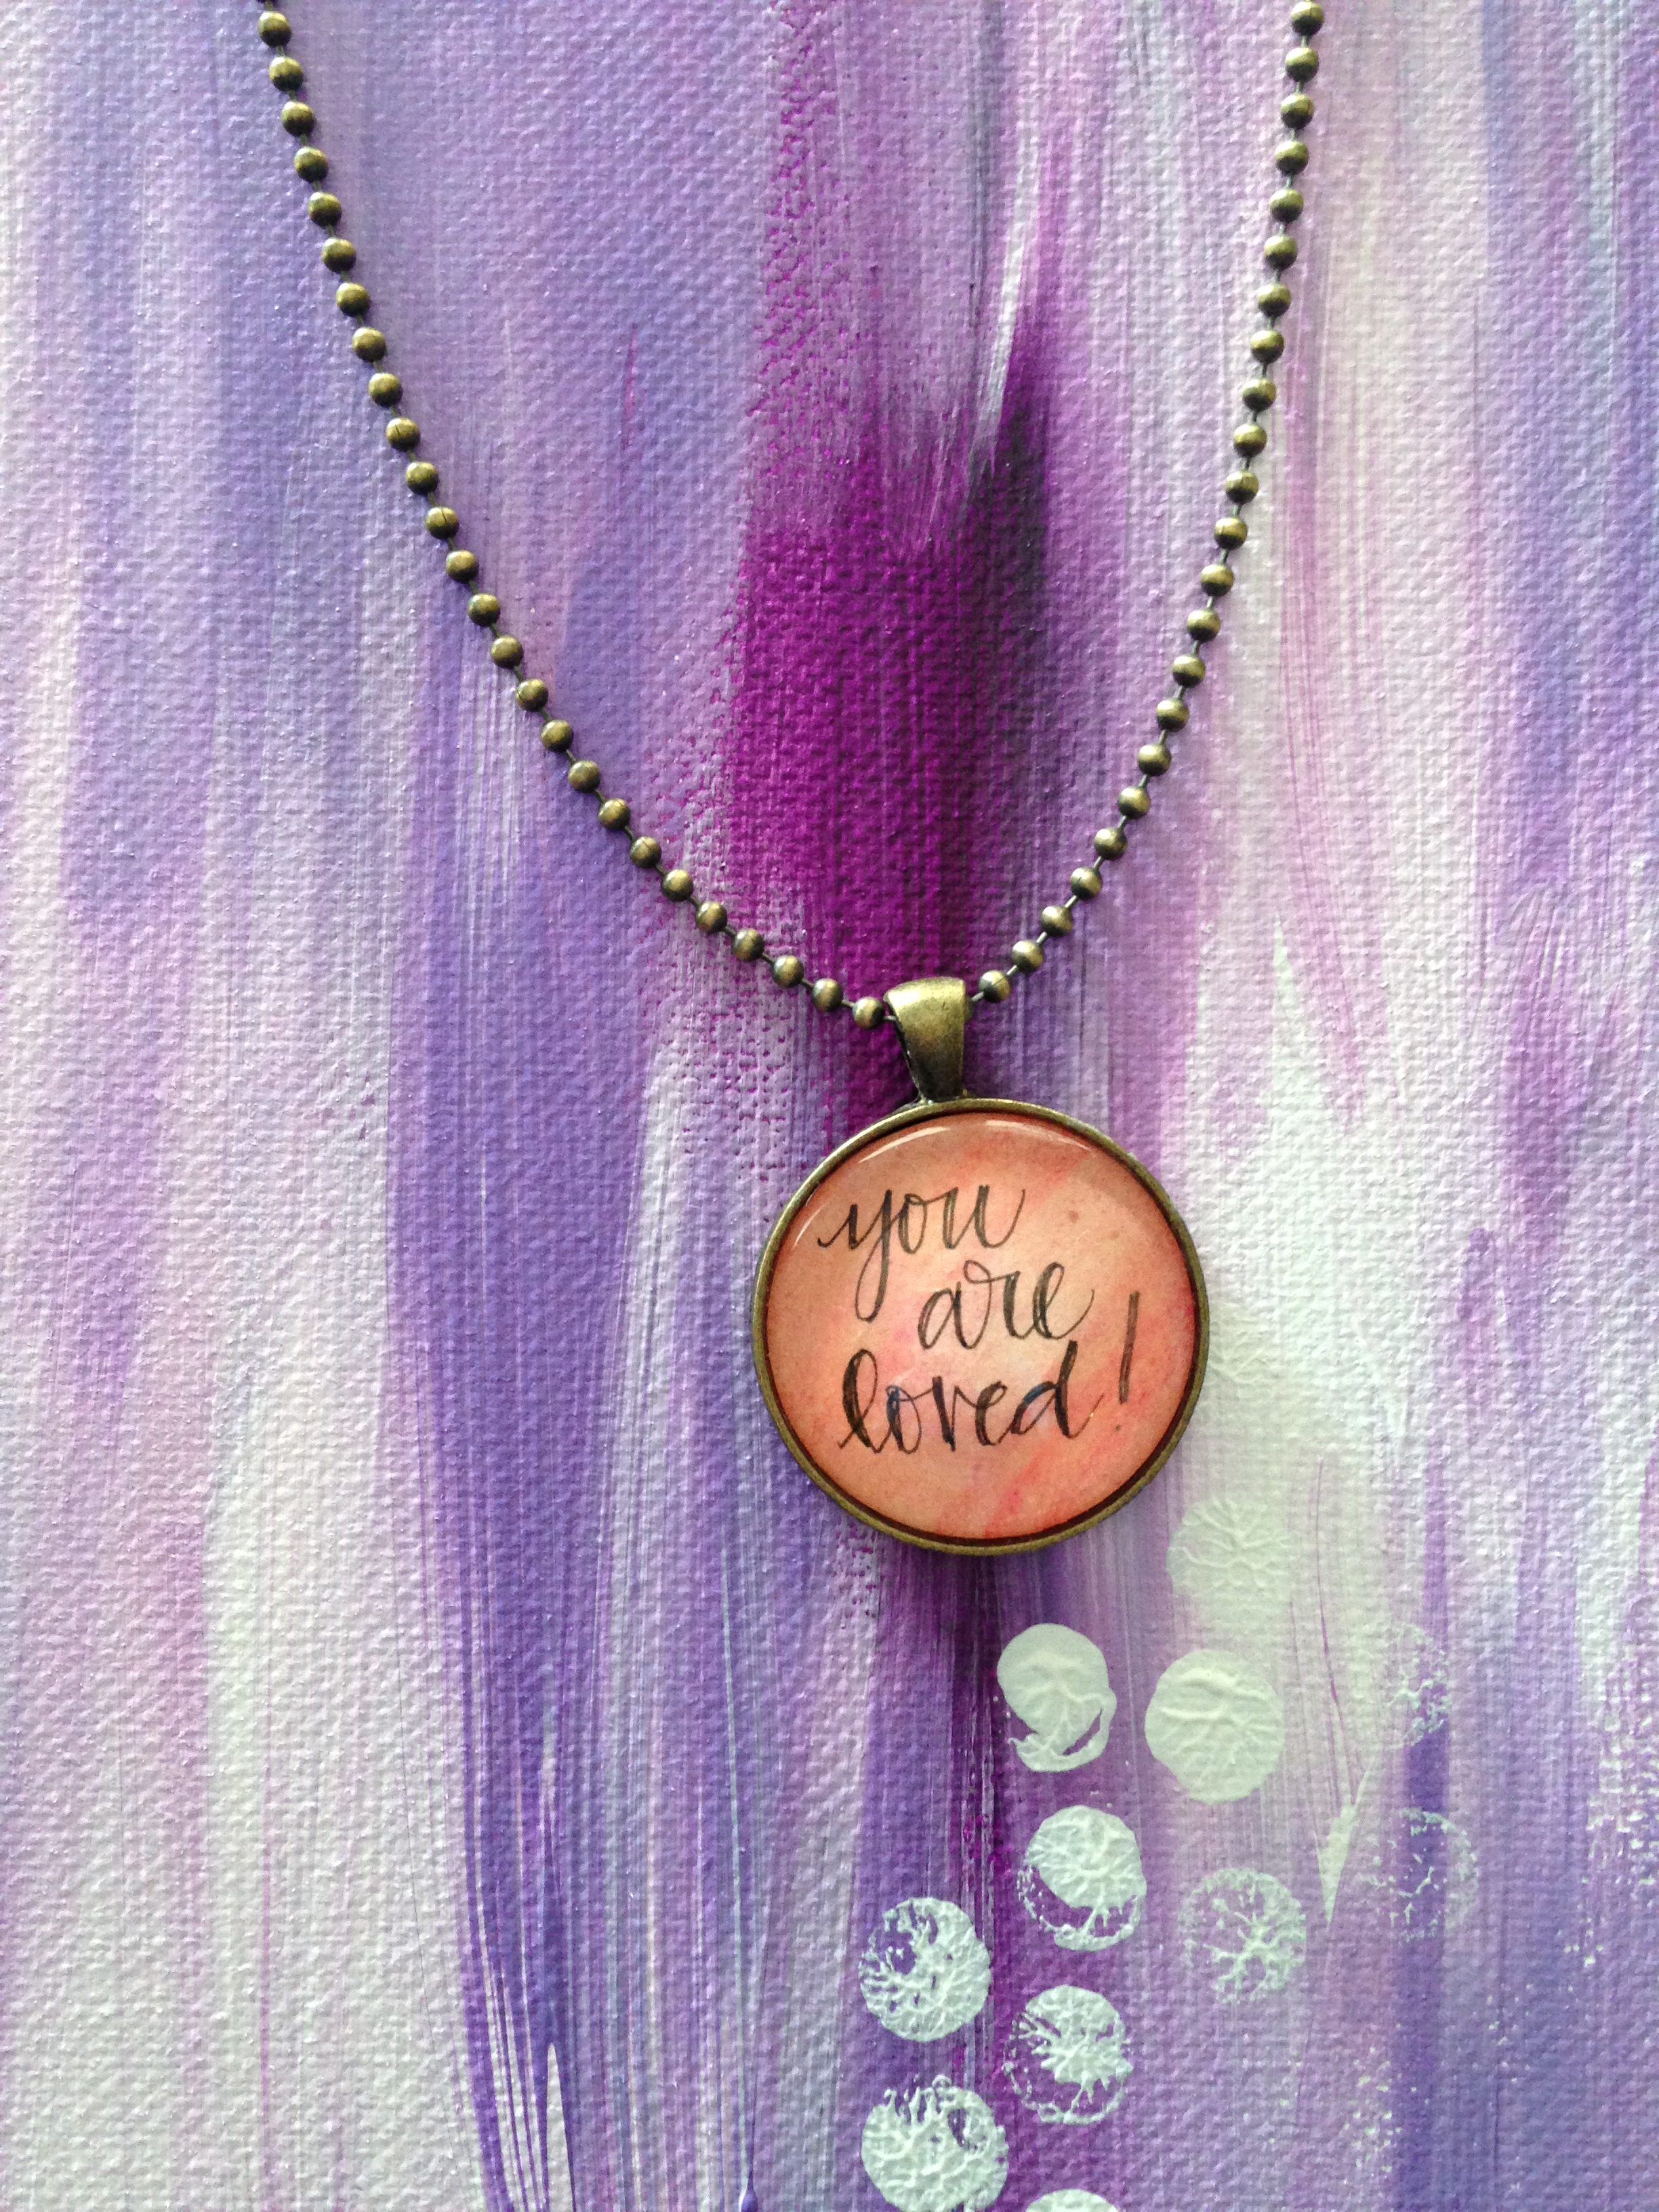 Hand-made Necklace made by my uber-talented Mom (hand-lettered by me)